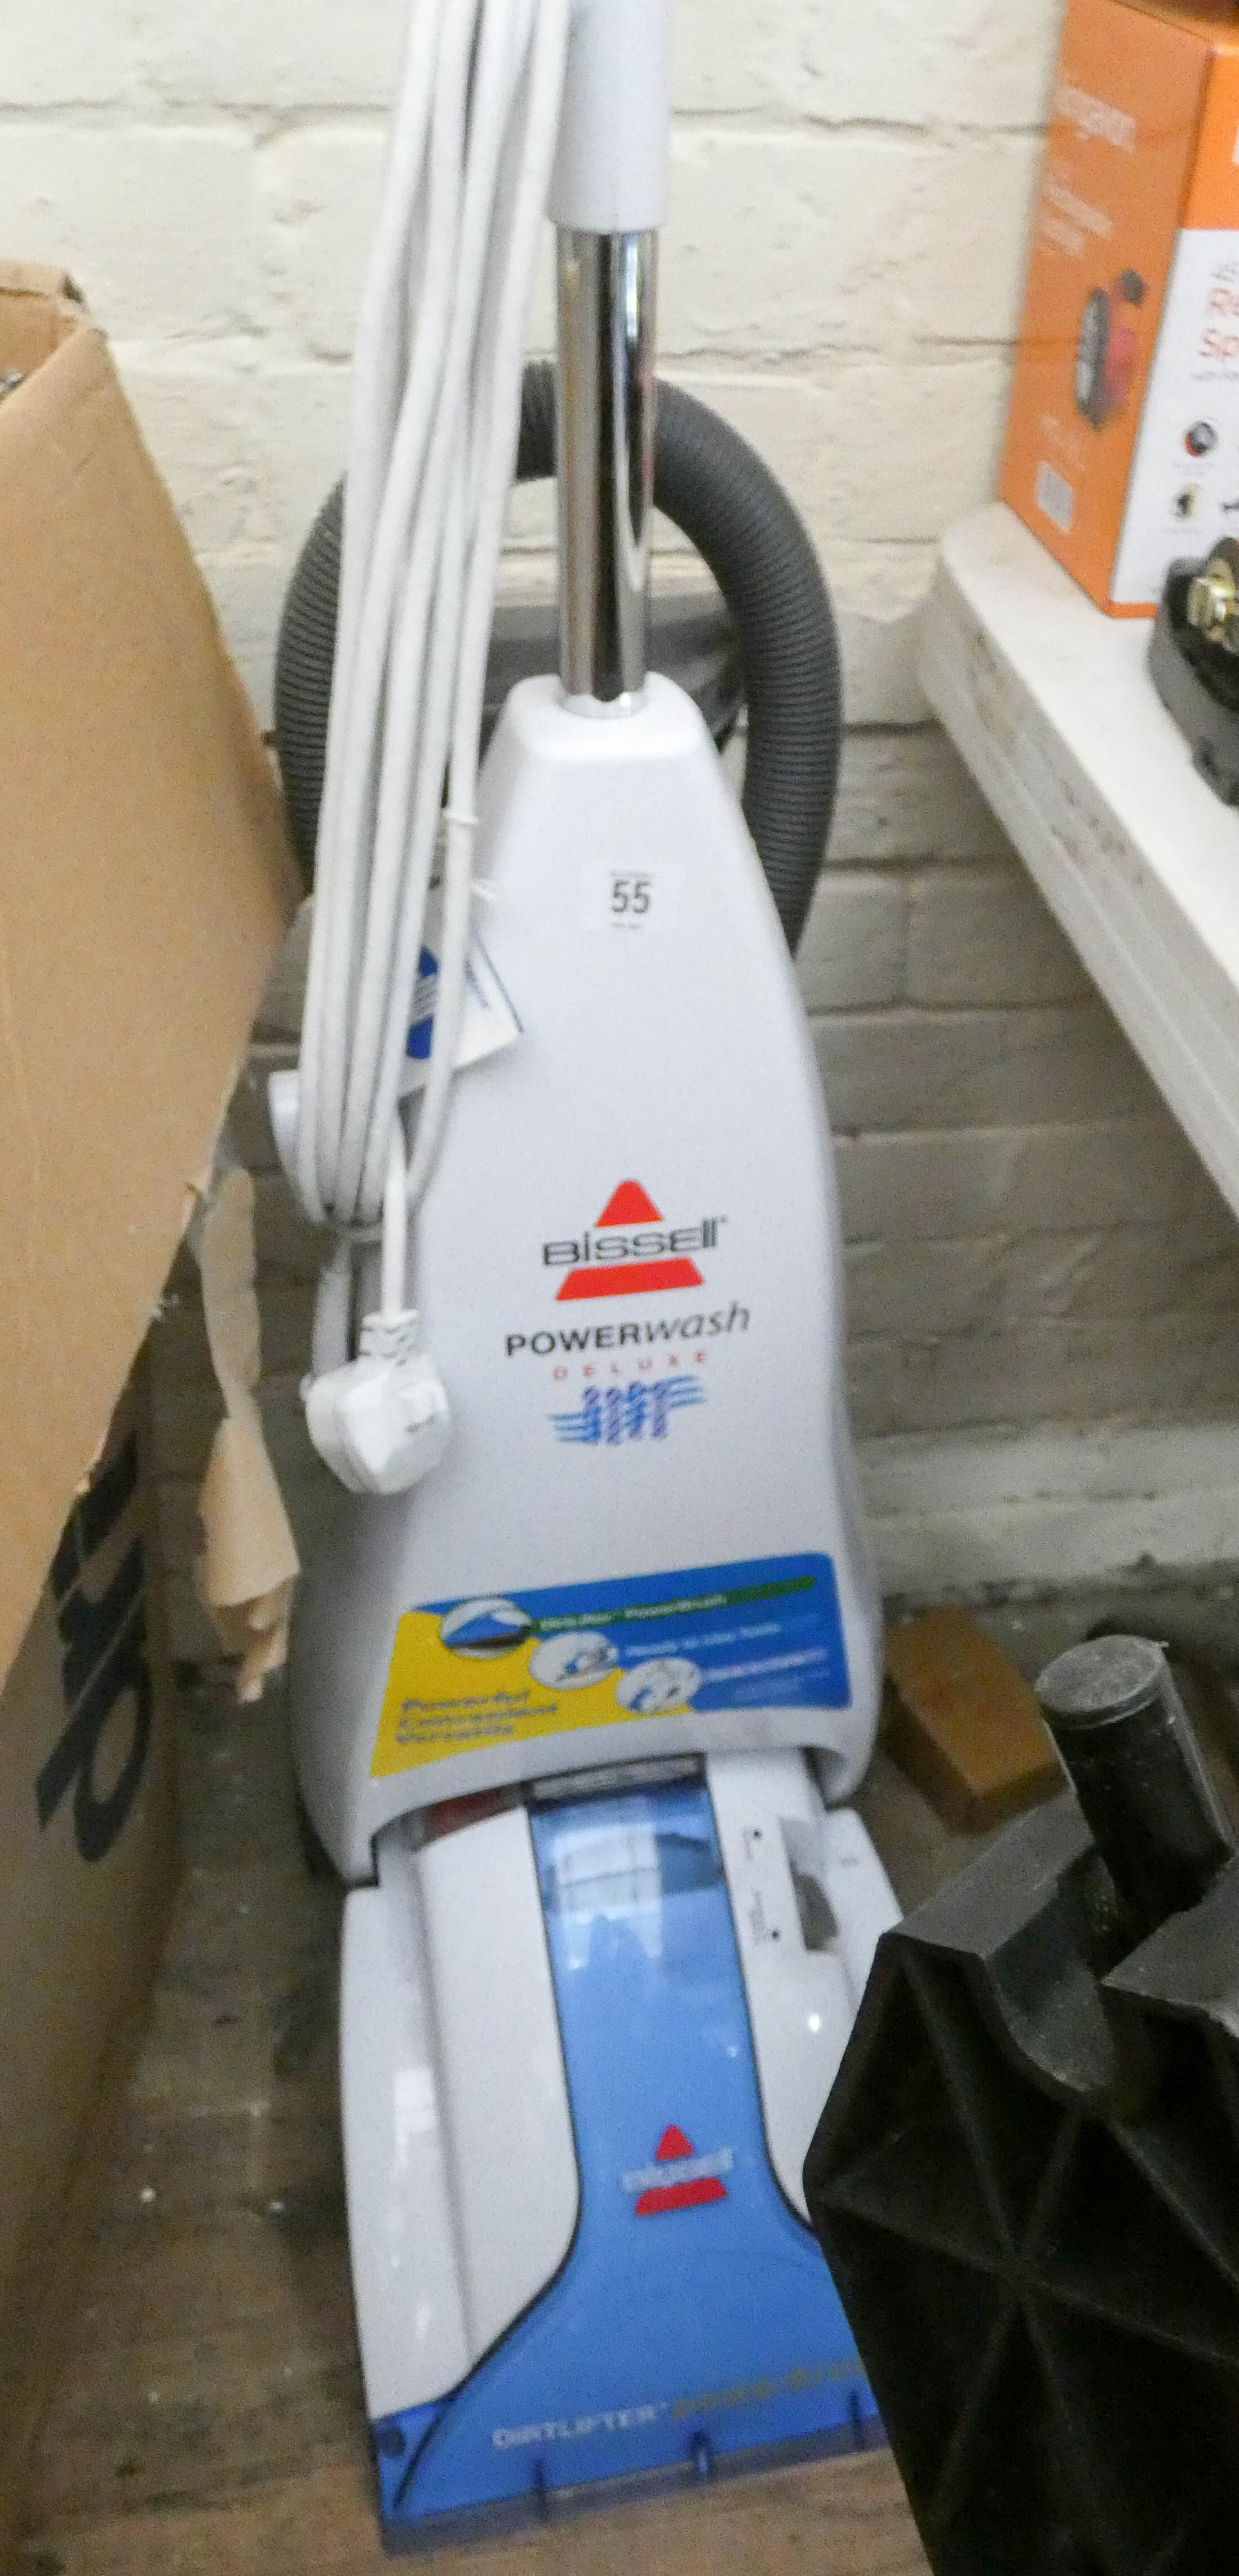 Lot 55 - A Bissell power wash deluxe carpet cleaner